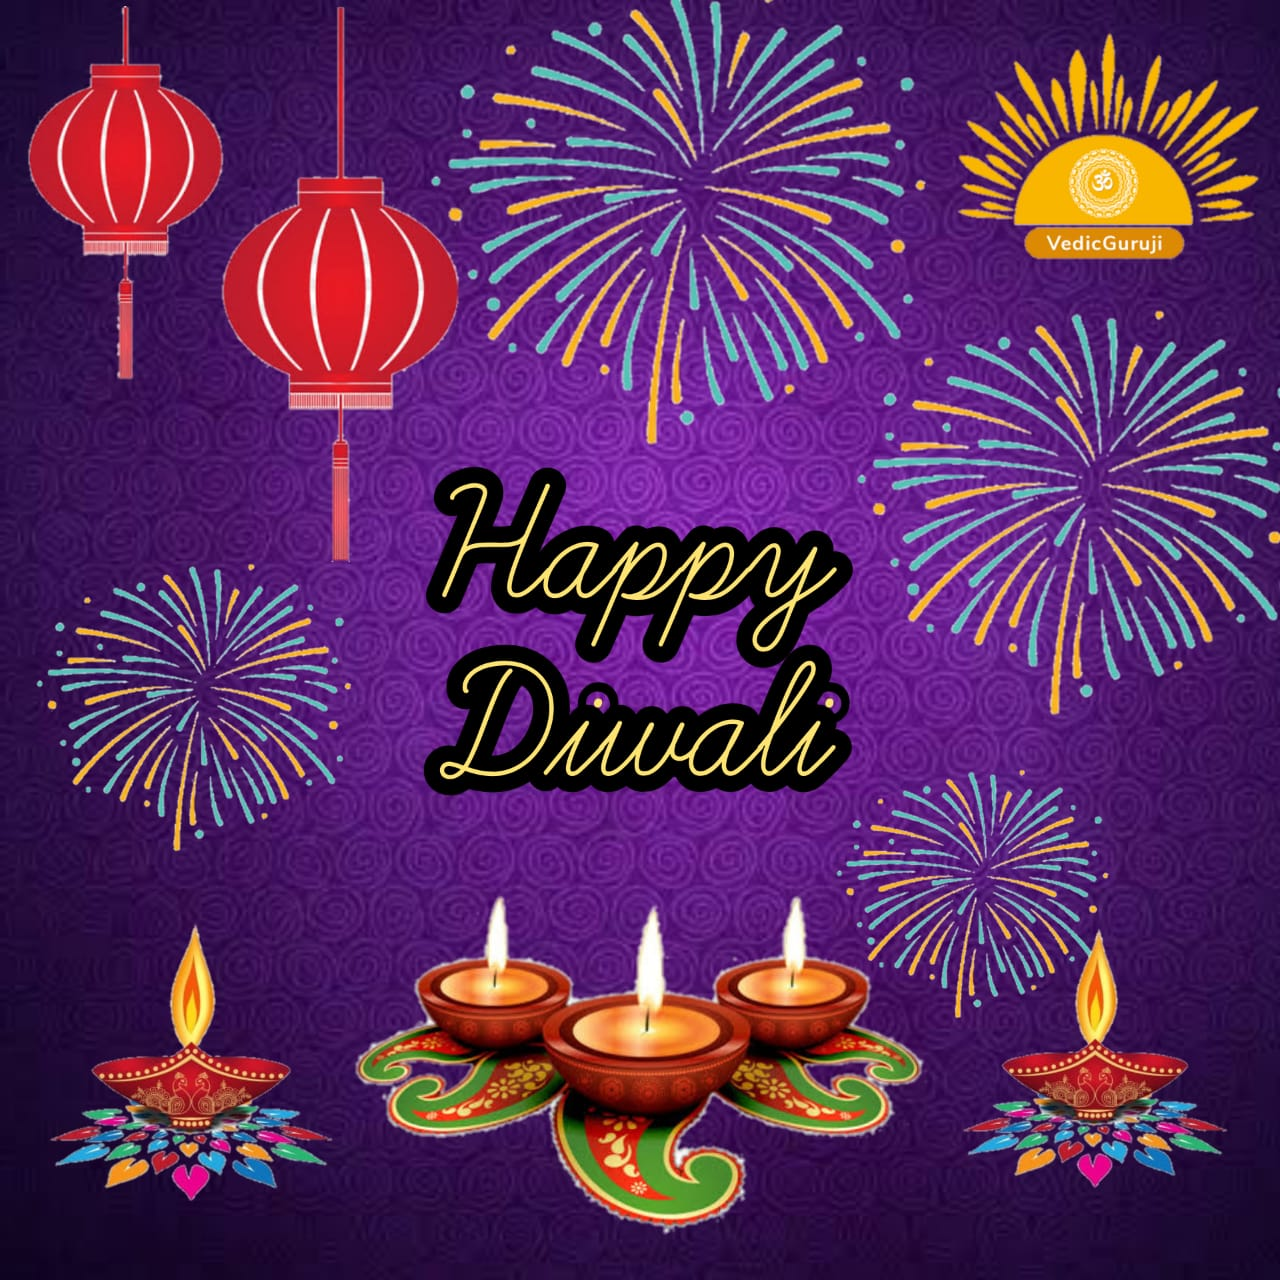 Diwali- the most-awaited festival of the year